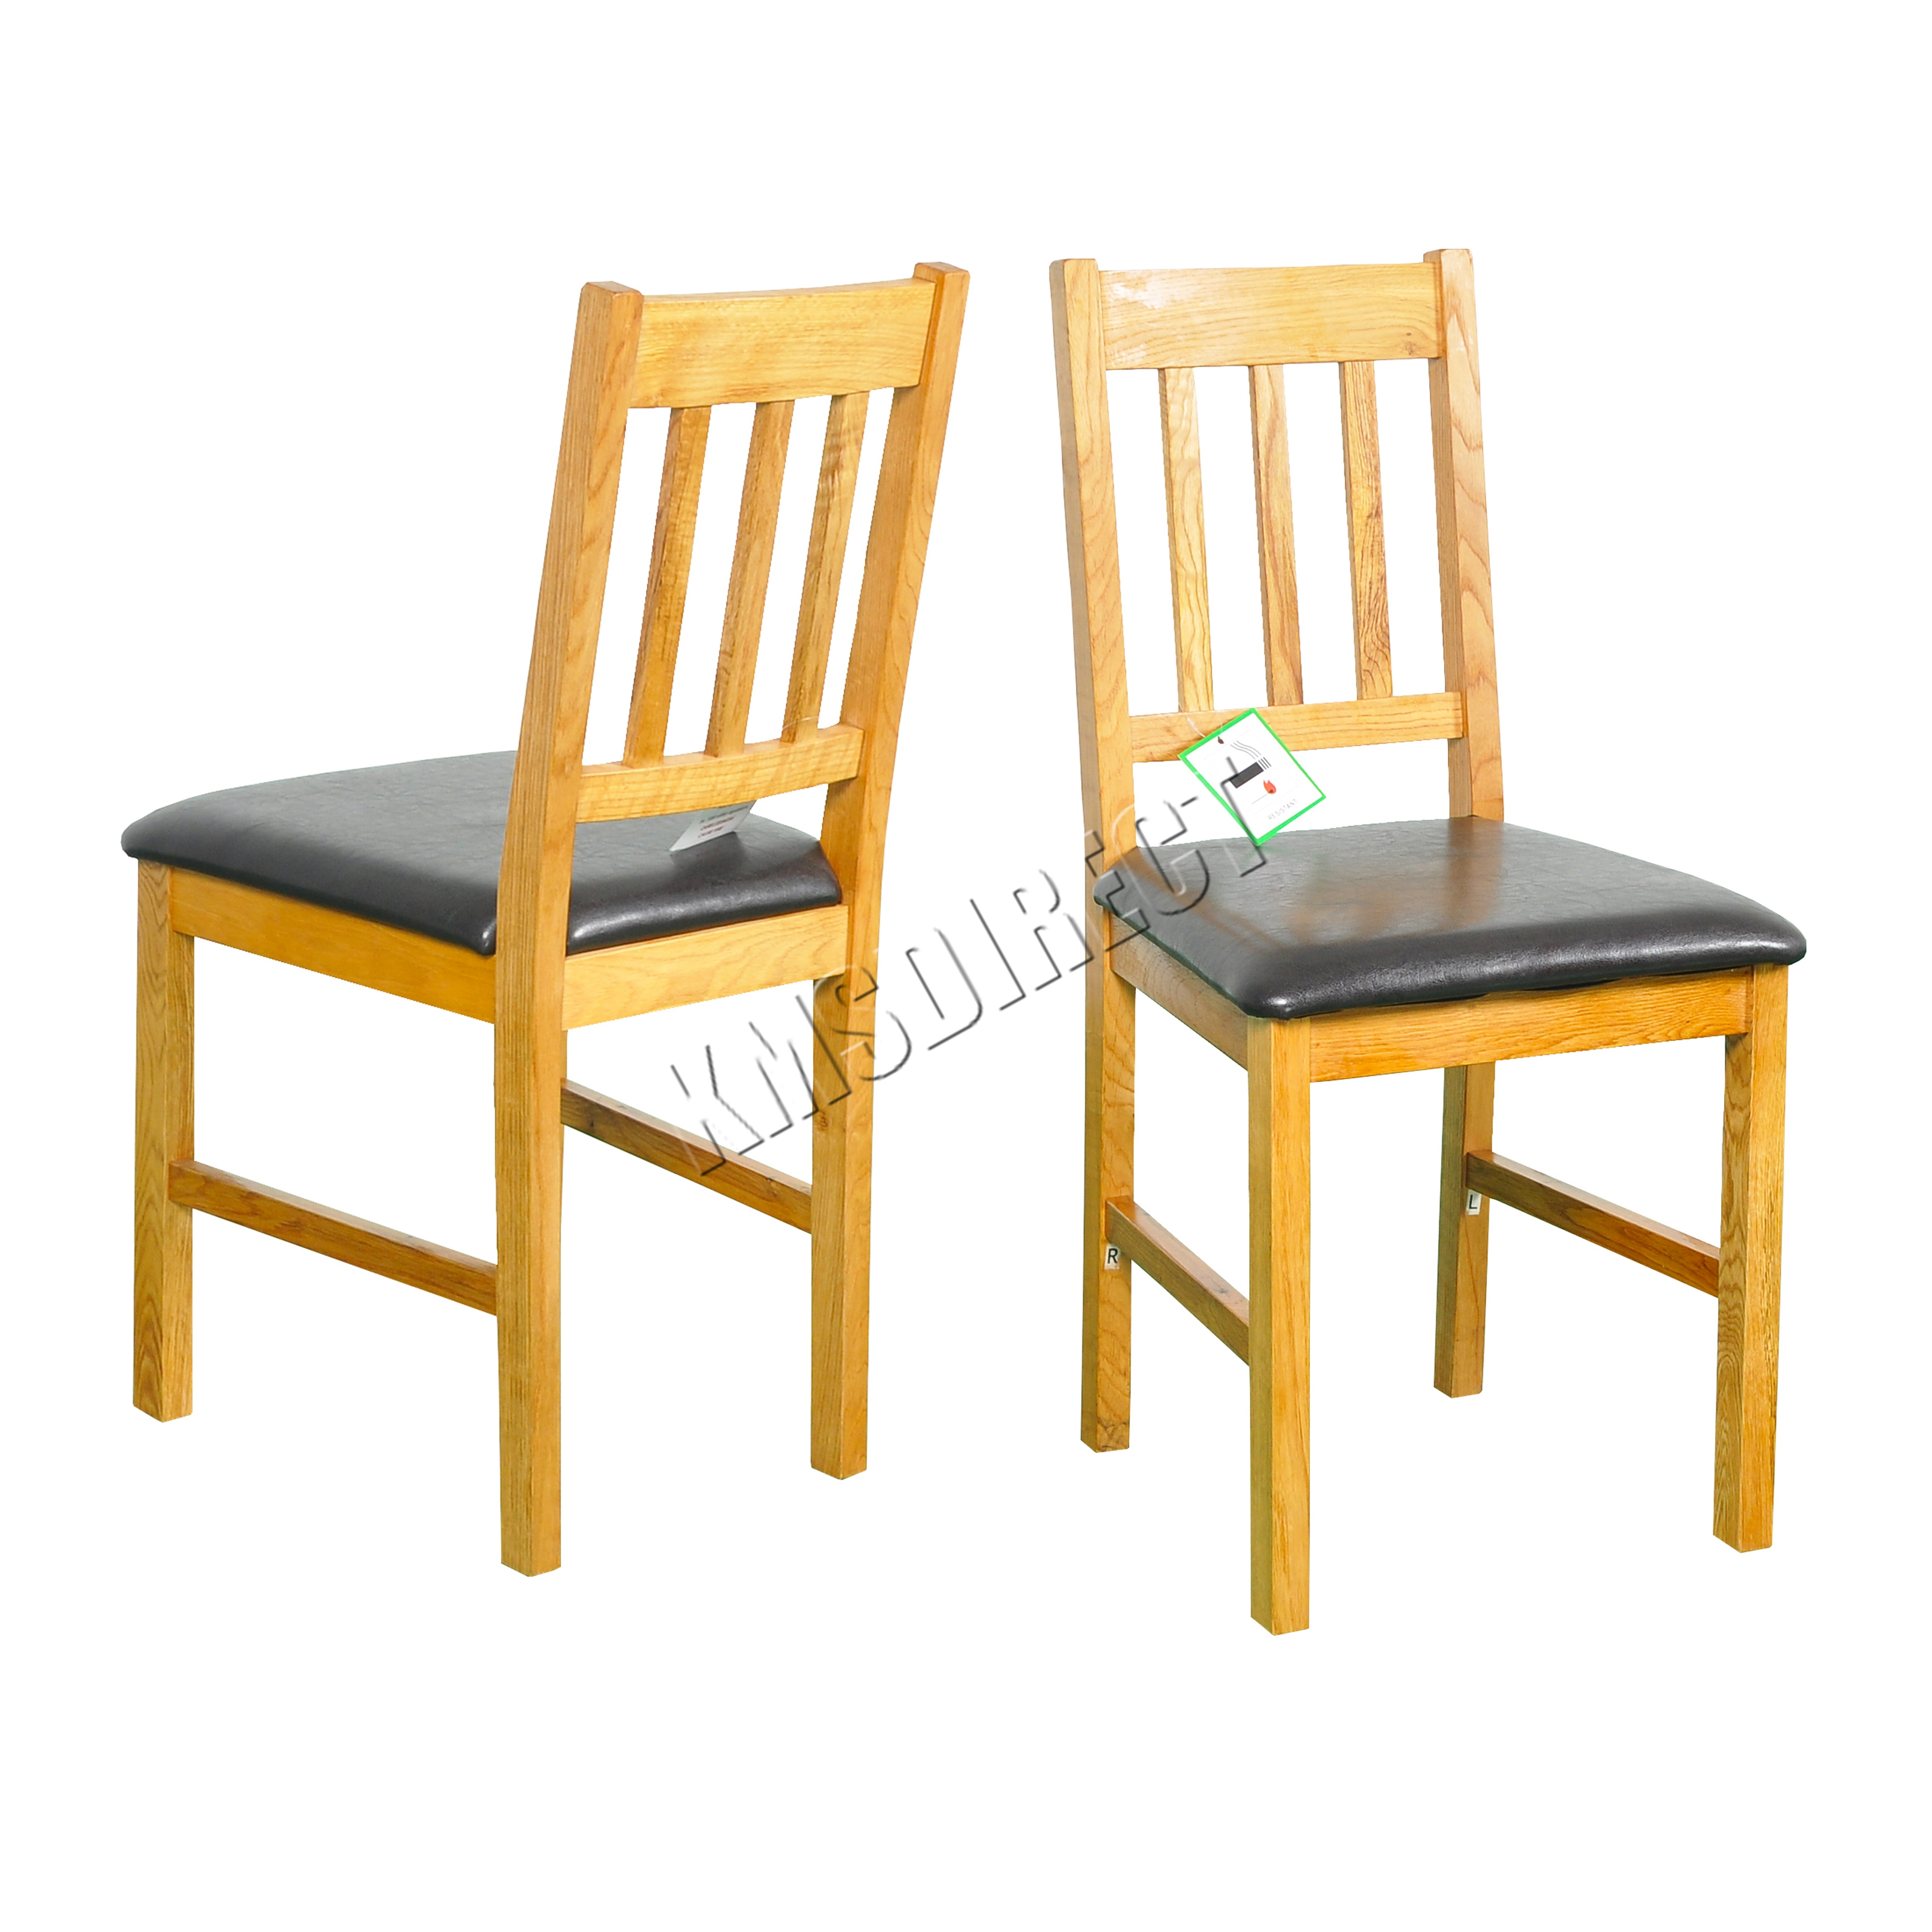 Unfinished Wood Dining Chairs Foxhunter 2x Solid Wooden Oak Dining Chair Set With Pu